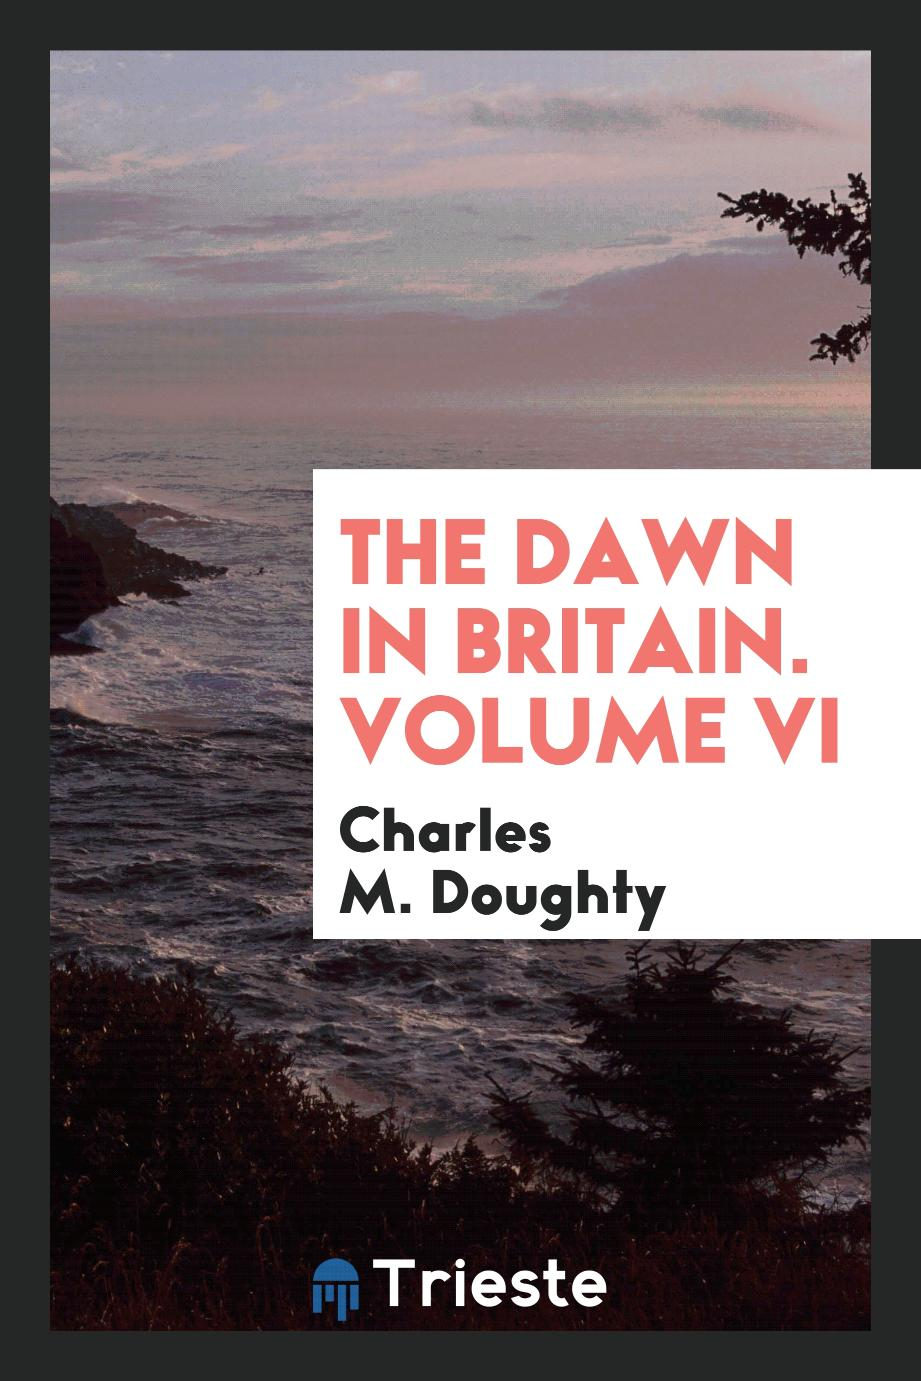 Charles M. Doughty - The Dawn in Britain. Volume VI